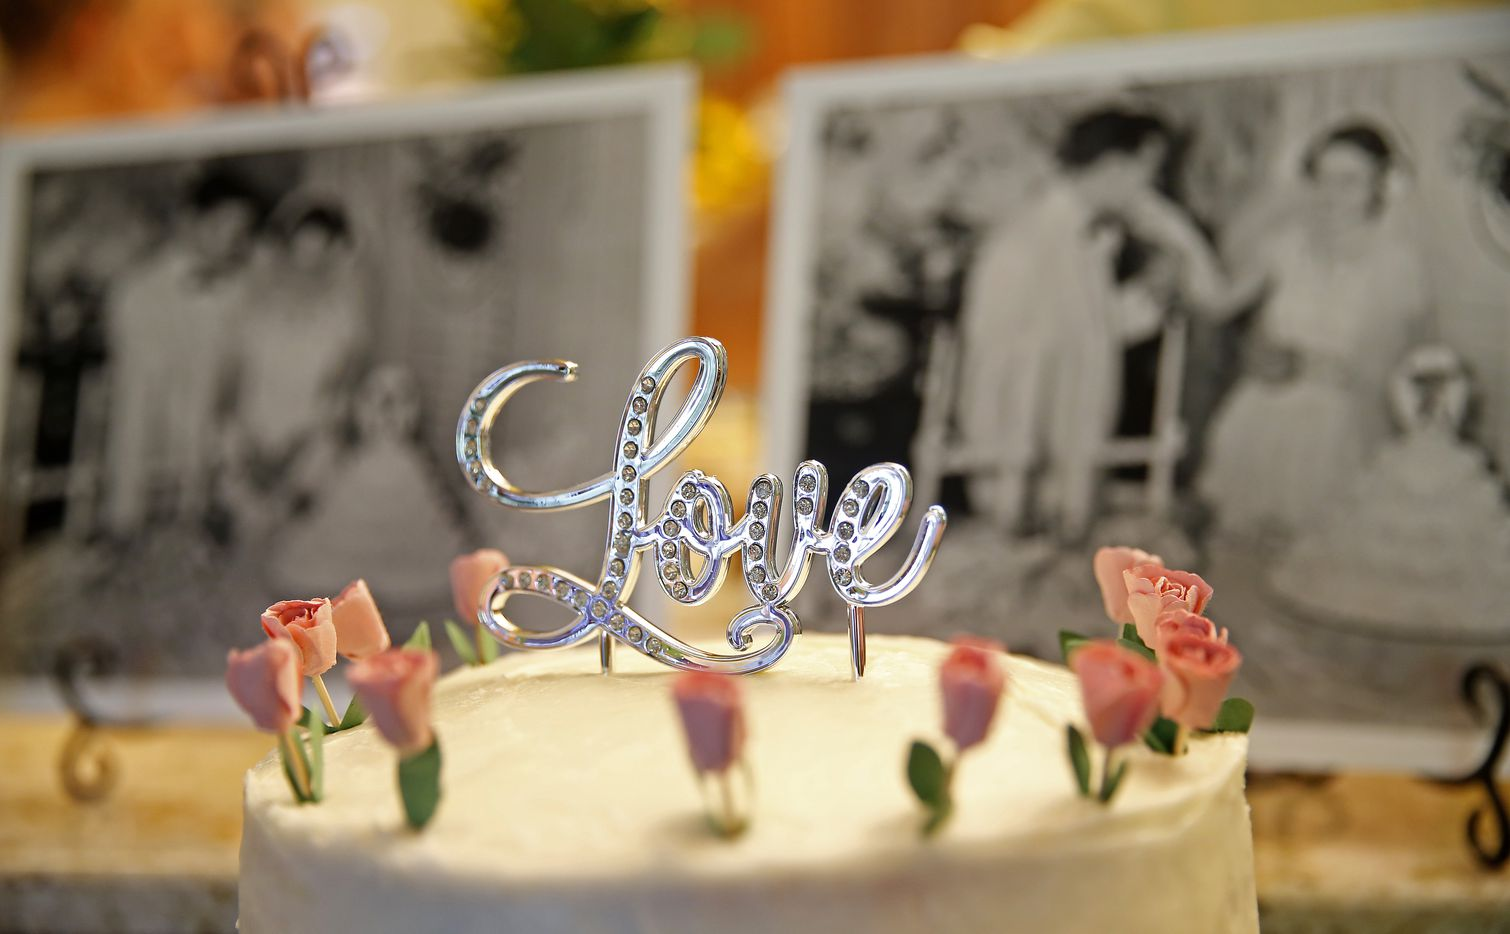 A cake sits on the table in front of the pictures of Frank and Carole Barbosa at their 65th wedding anniversary celebration at their daughter Ani Stone's home in Dallas, Wednesday, July 26, 2017.